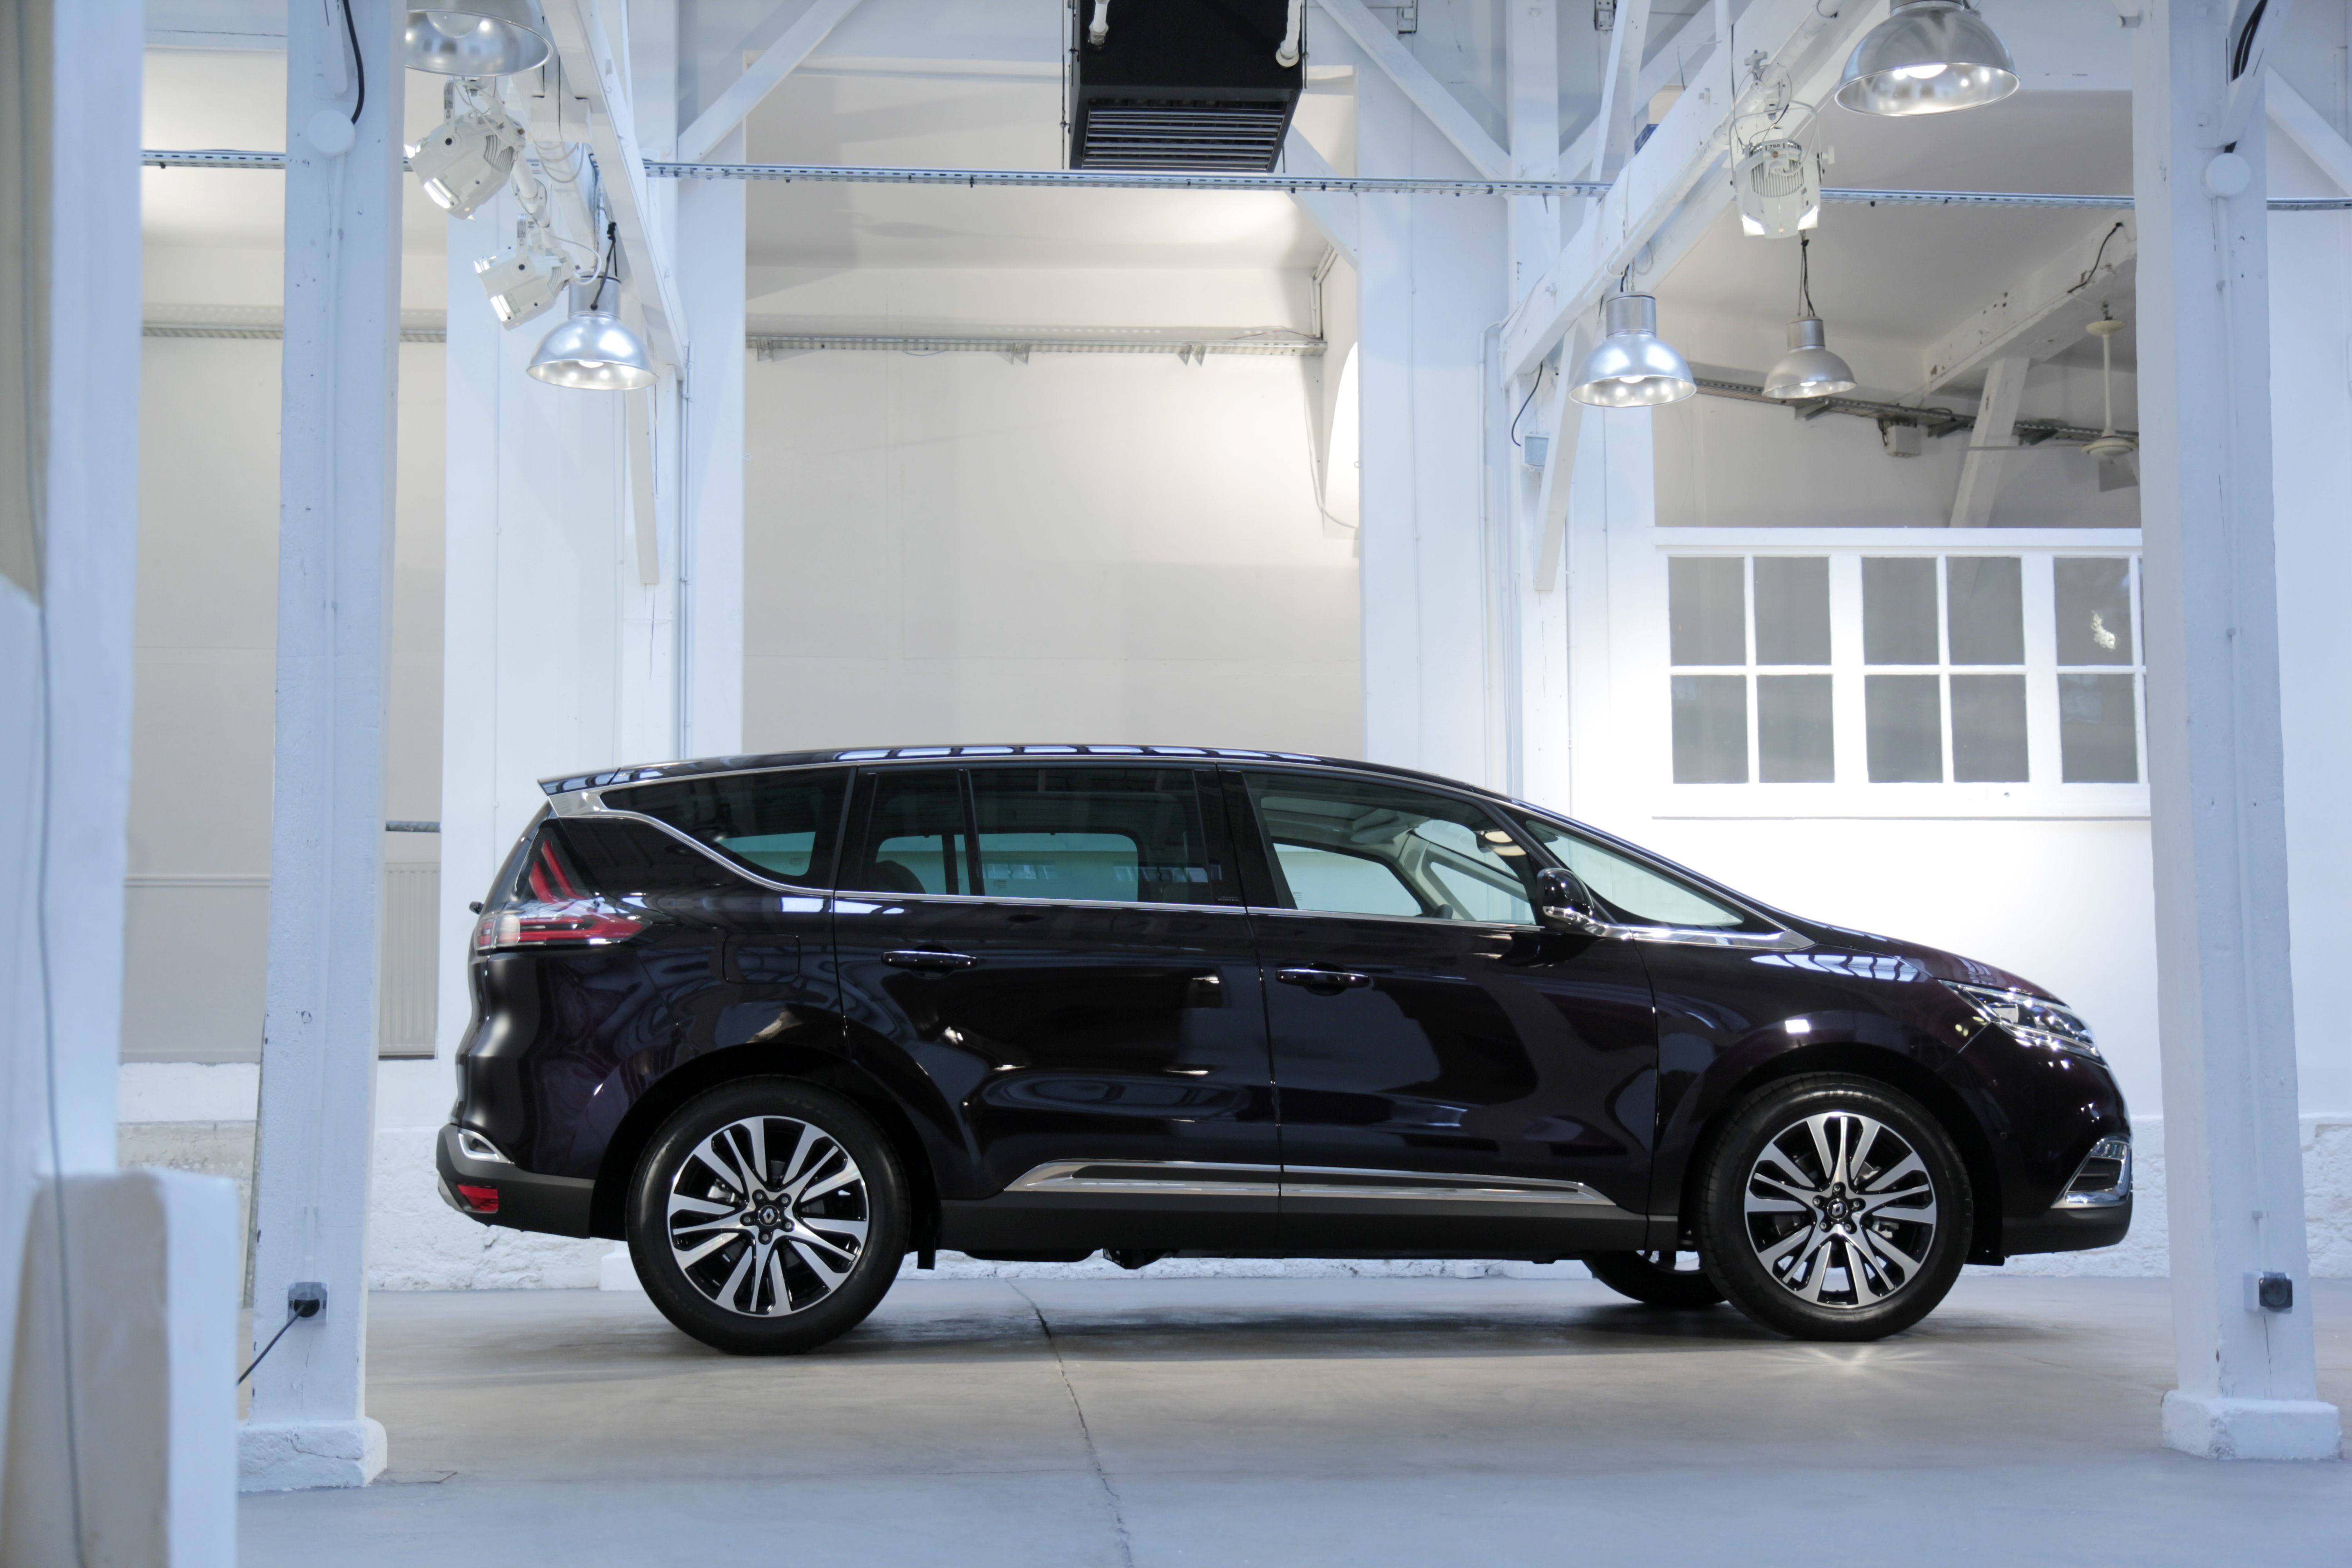 vid o caradisiac part la d couverte du nouveau renault espace. Black Bedroom Furniture Sets. Home Design Ideas